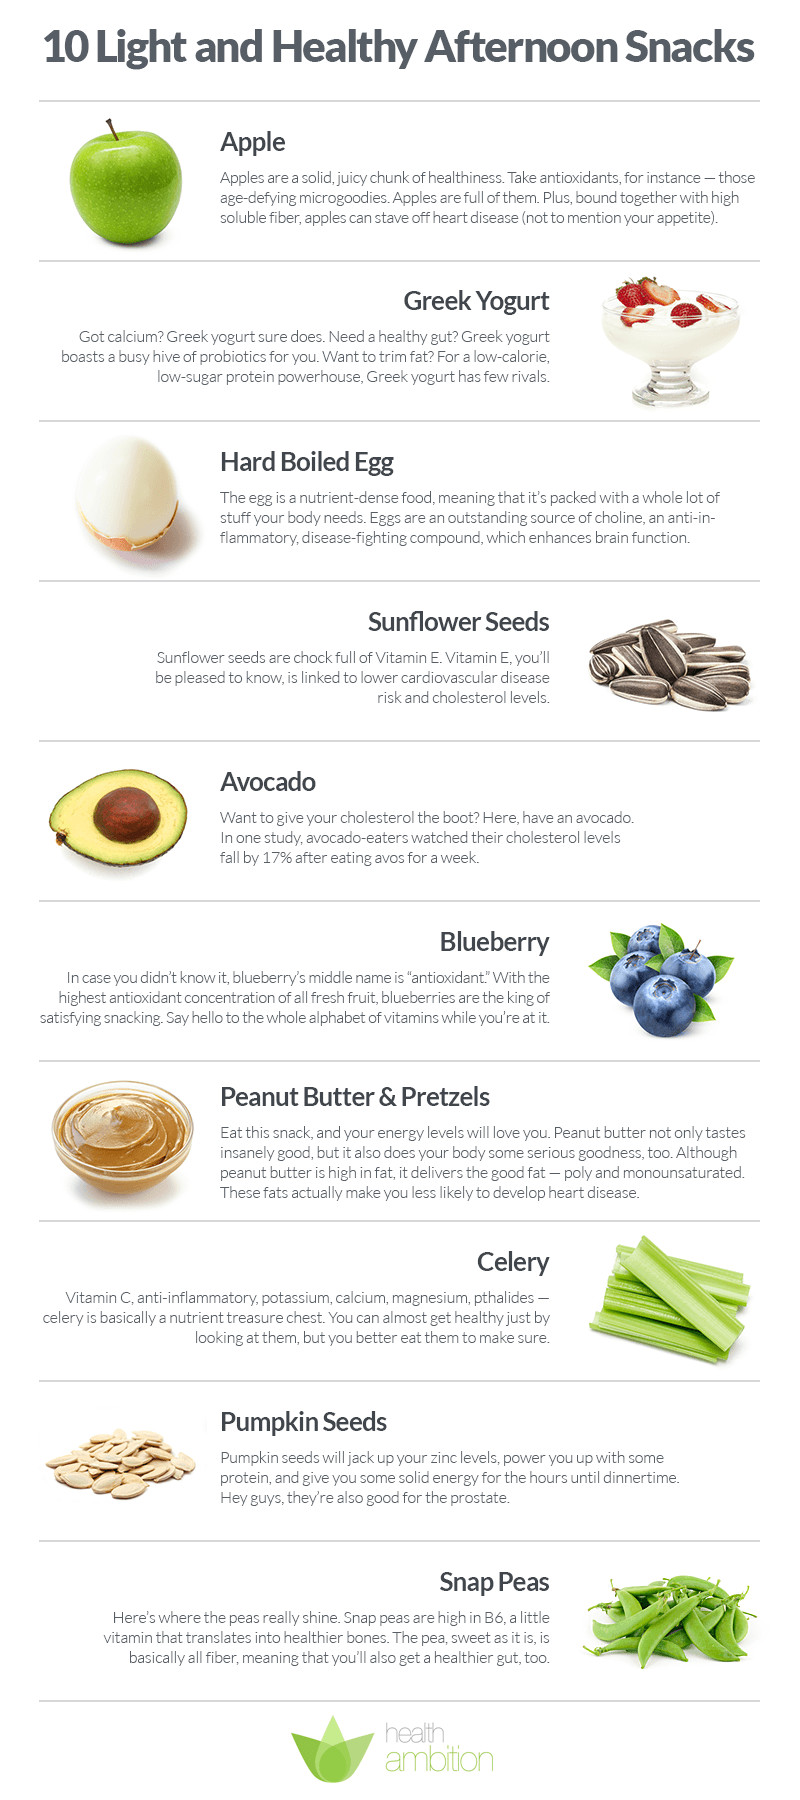 Healthy Afternoon Snacks For Work  10 Light and Healthy Afternoon Snacks Health Ambition